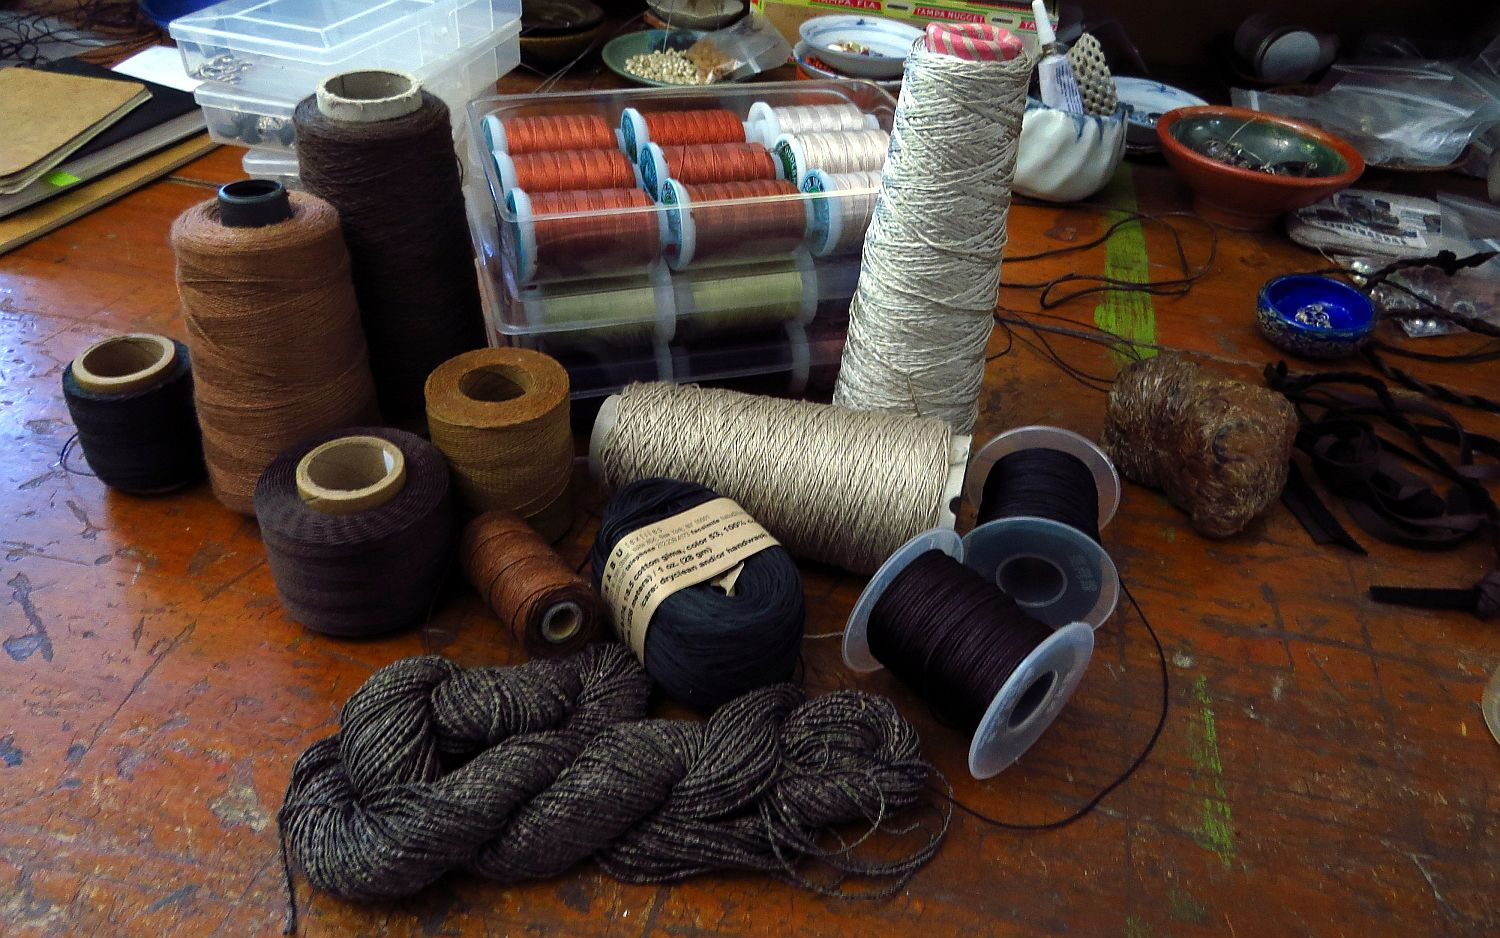 a selected portion of my vast collection of fiber experiments ... failures as well as successes